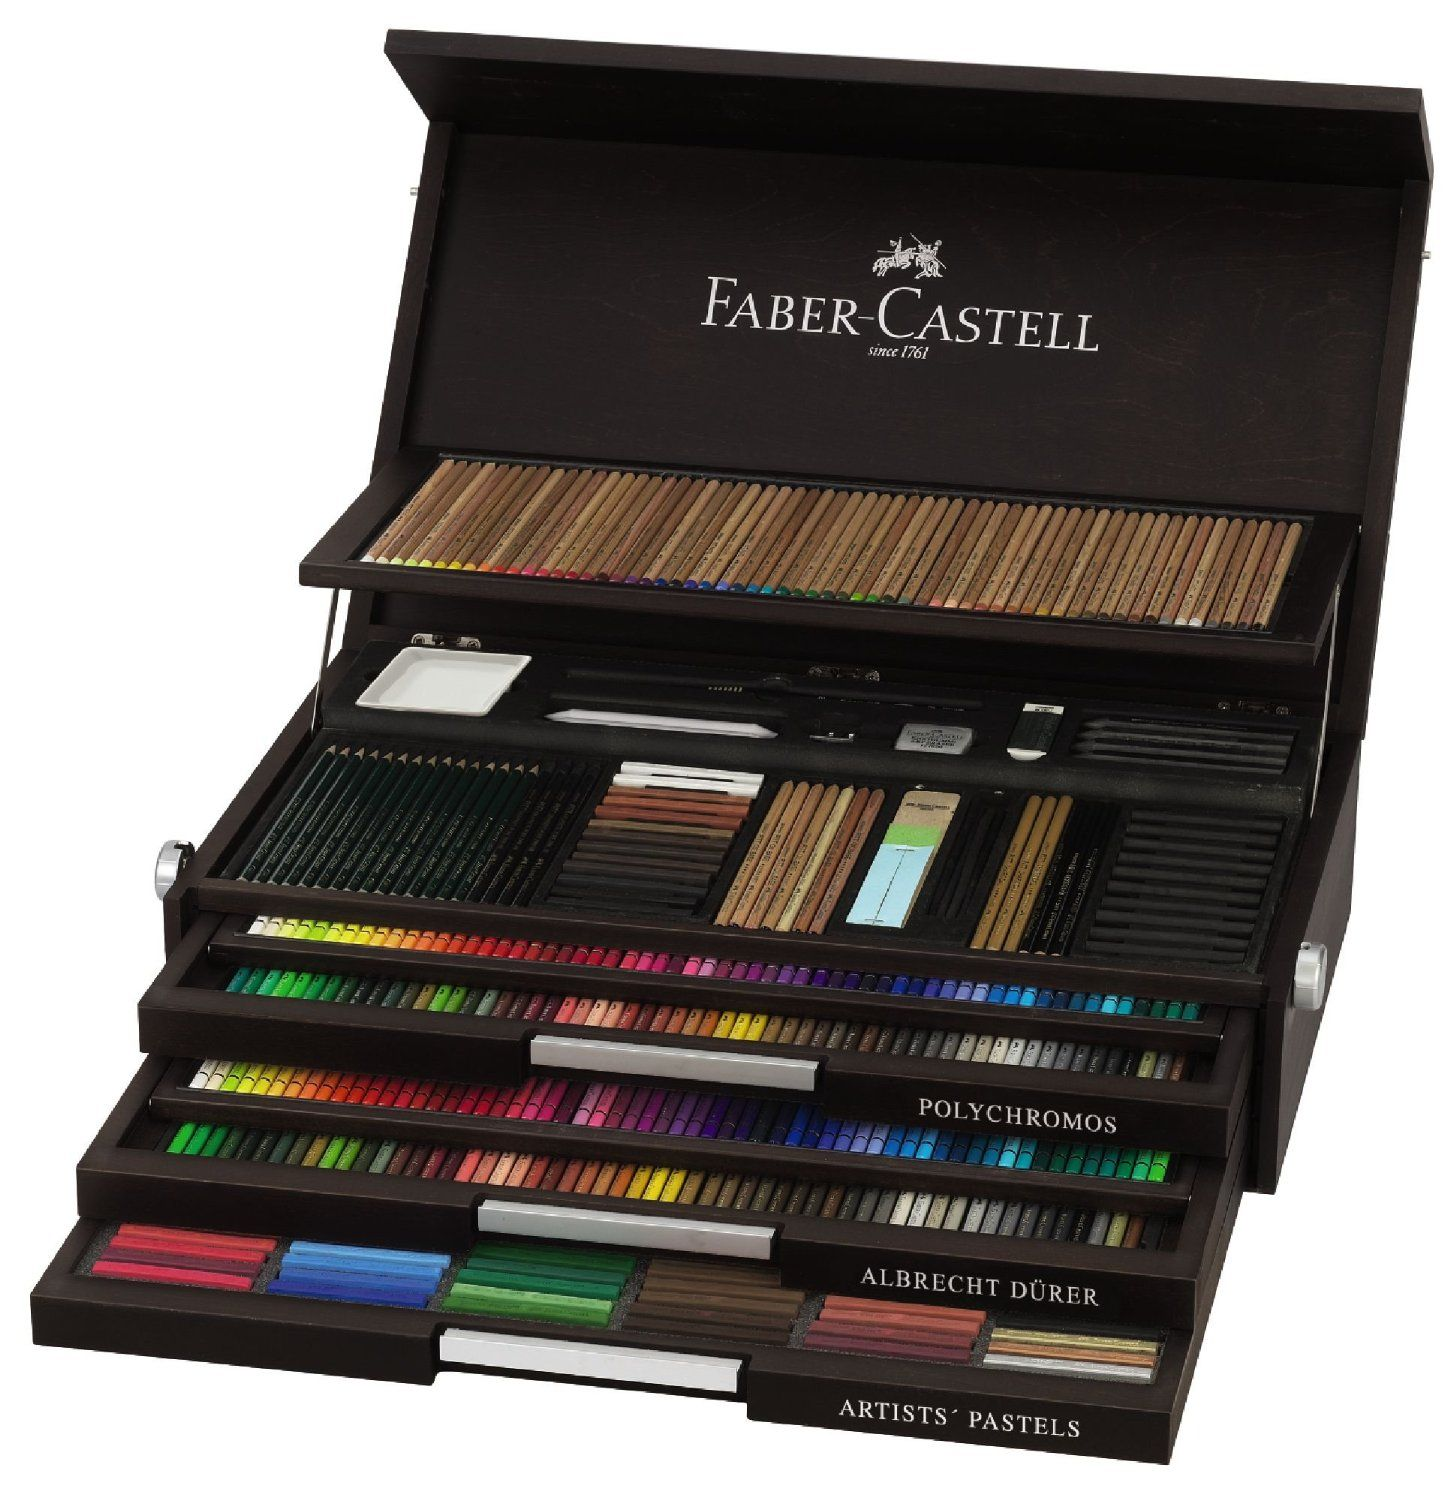 look at this sexy gentleman over here Faber Castell 250th